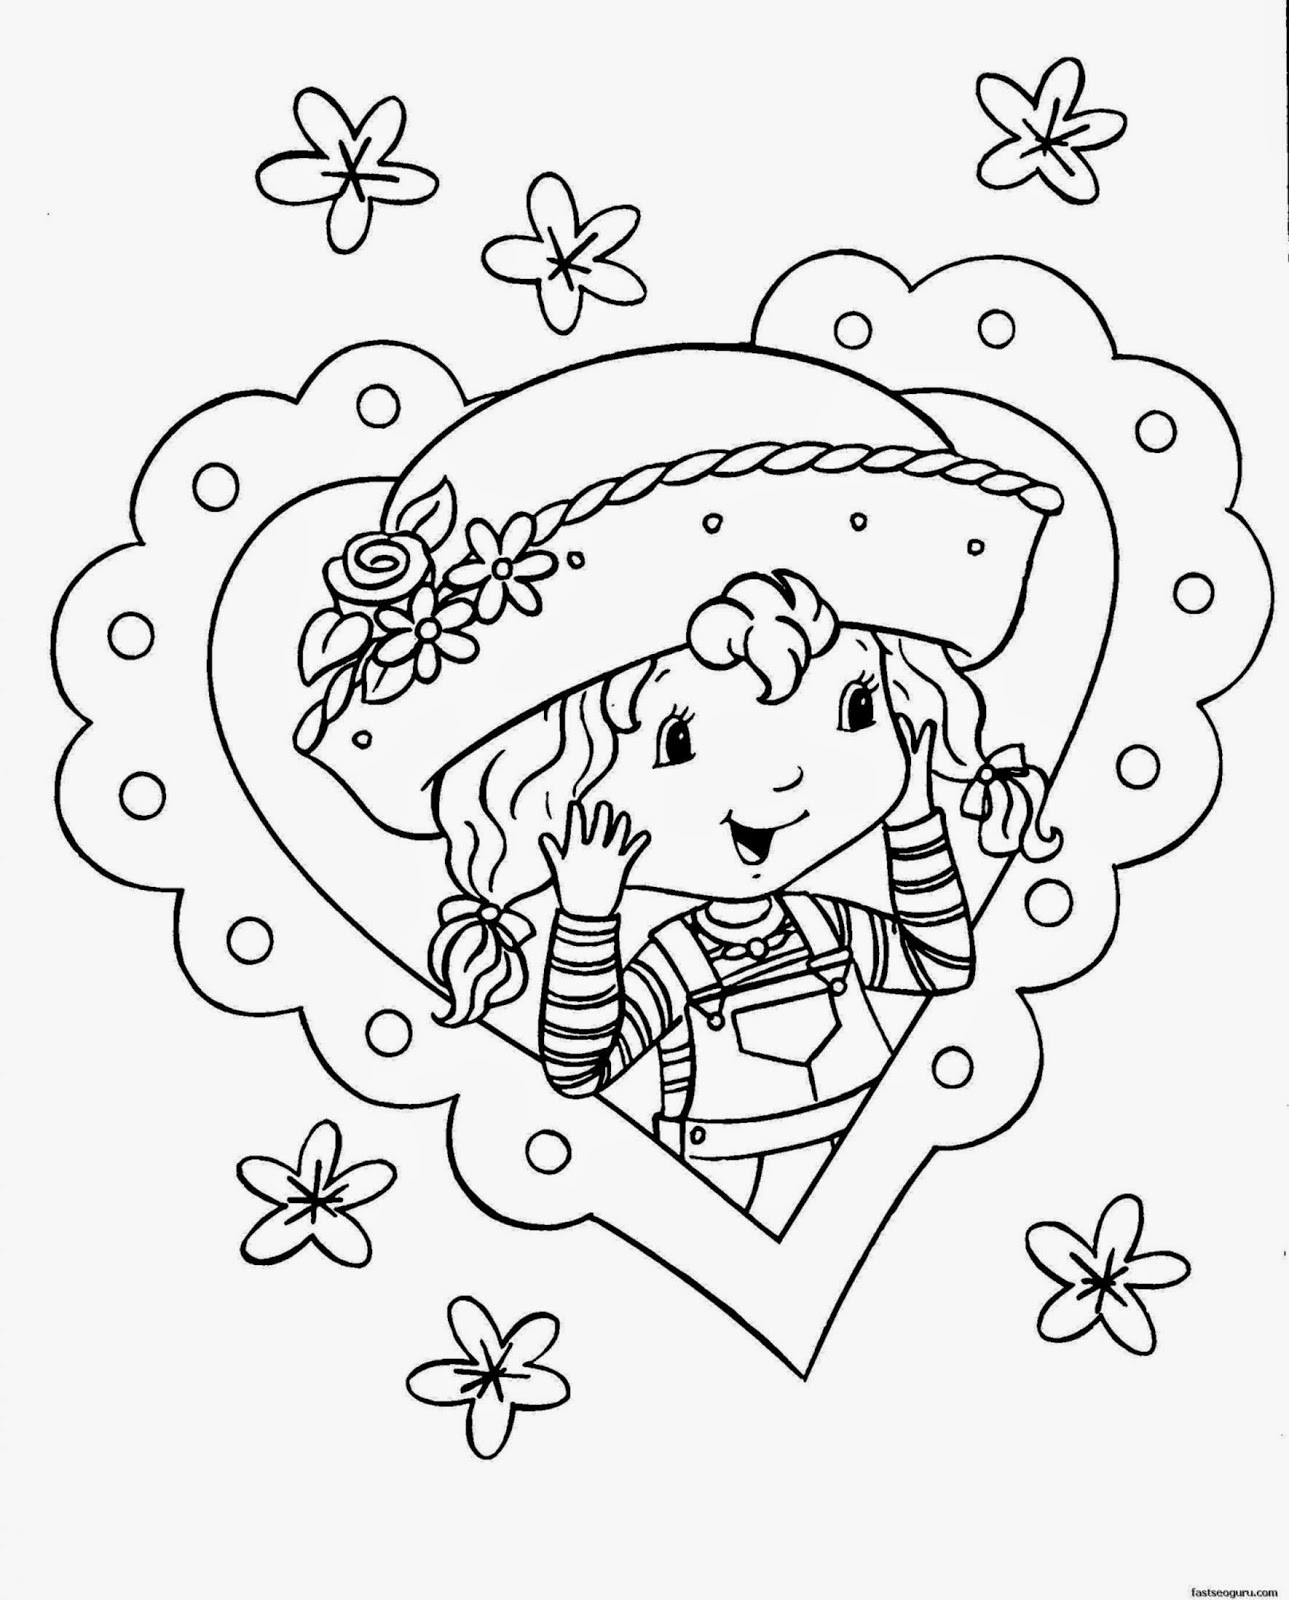 Best ideas about Coloring Pages For Girls To Print . Save or Pin Printable Coloring Pages For Girls Now.